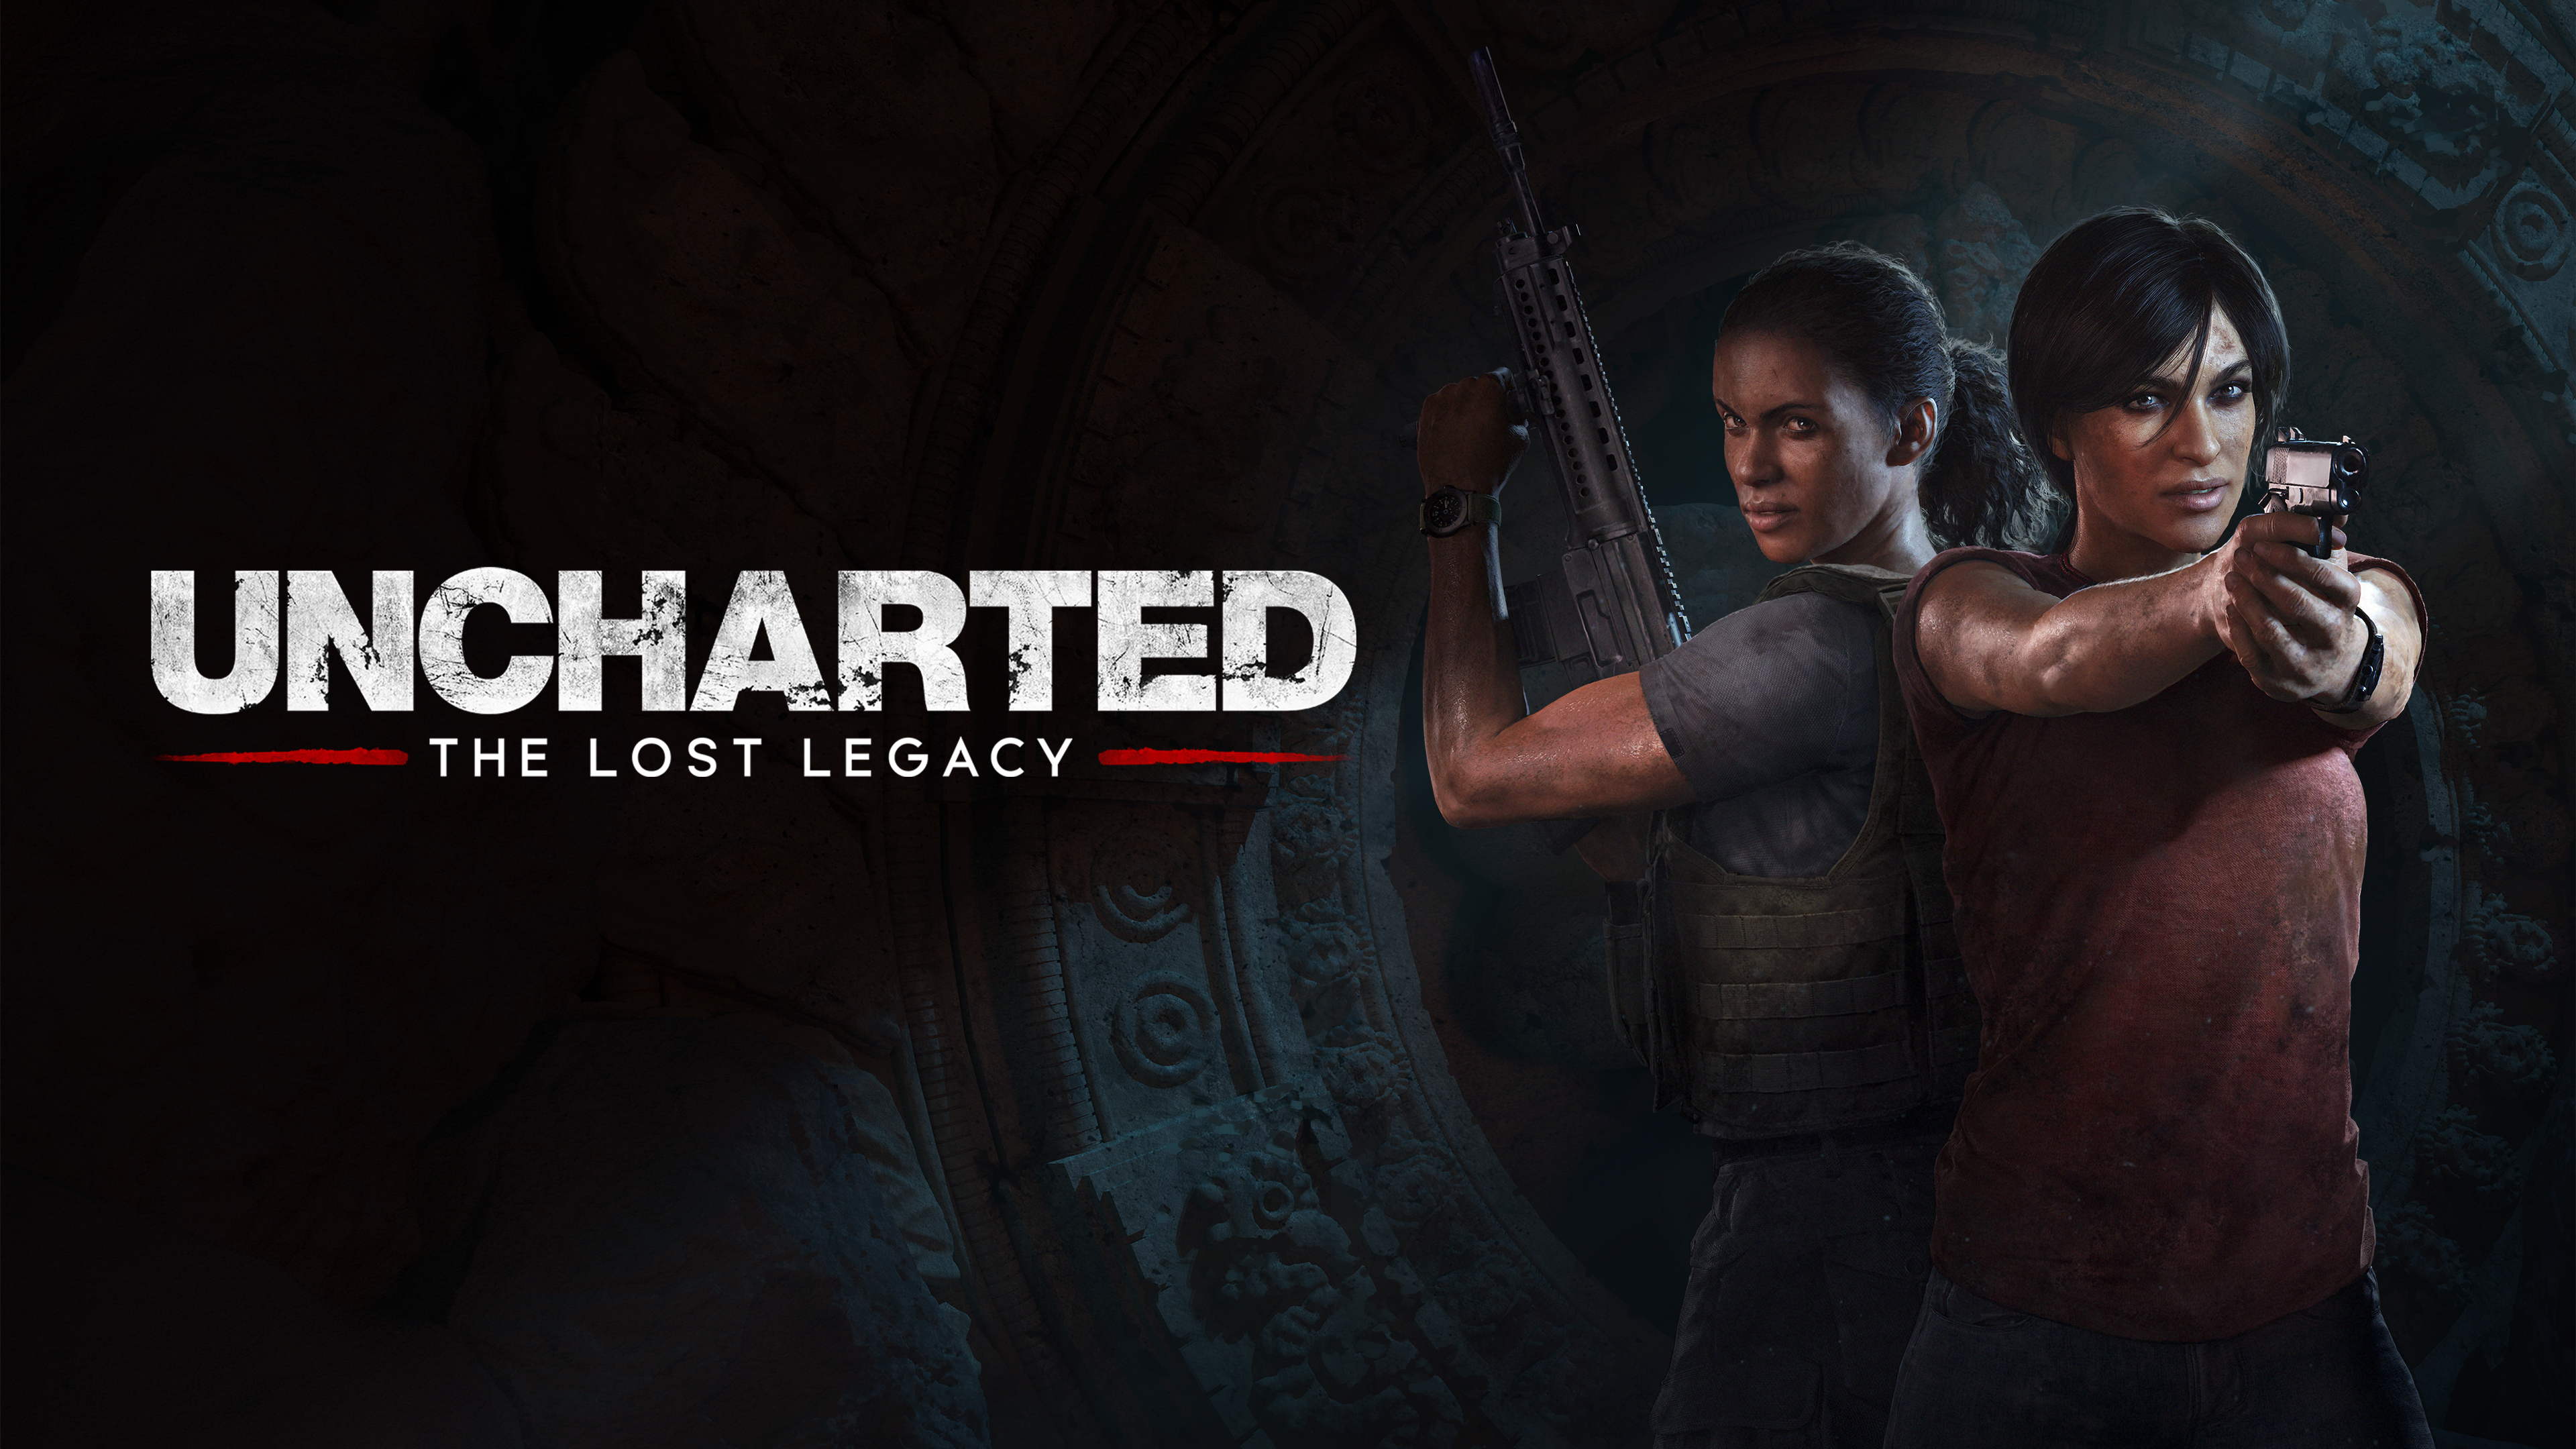 Naughty Dog Scrapped Uncharted 5 For Uncharted The Lost Legacy